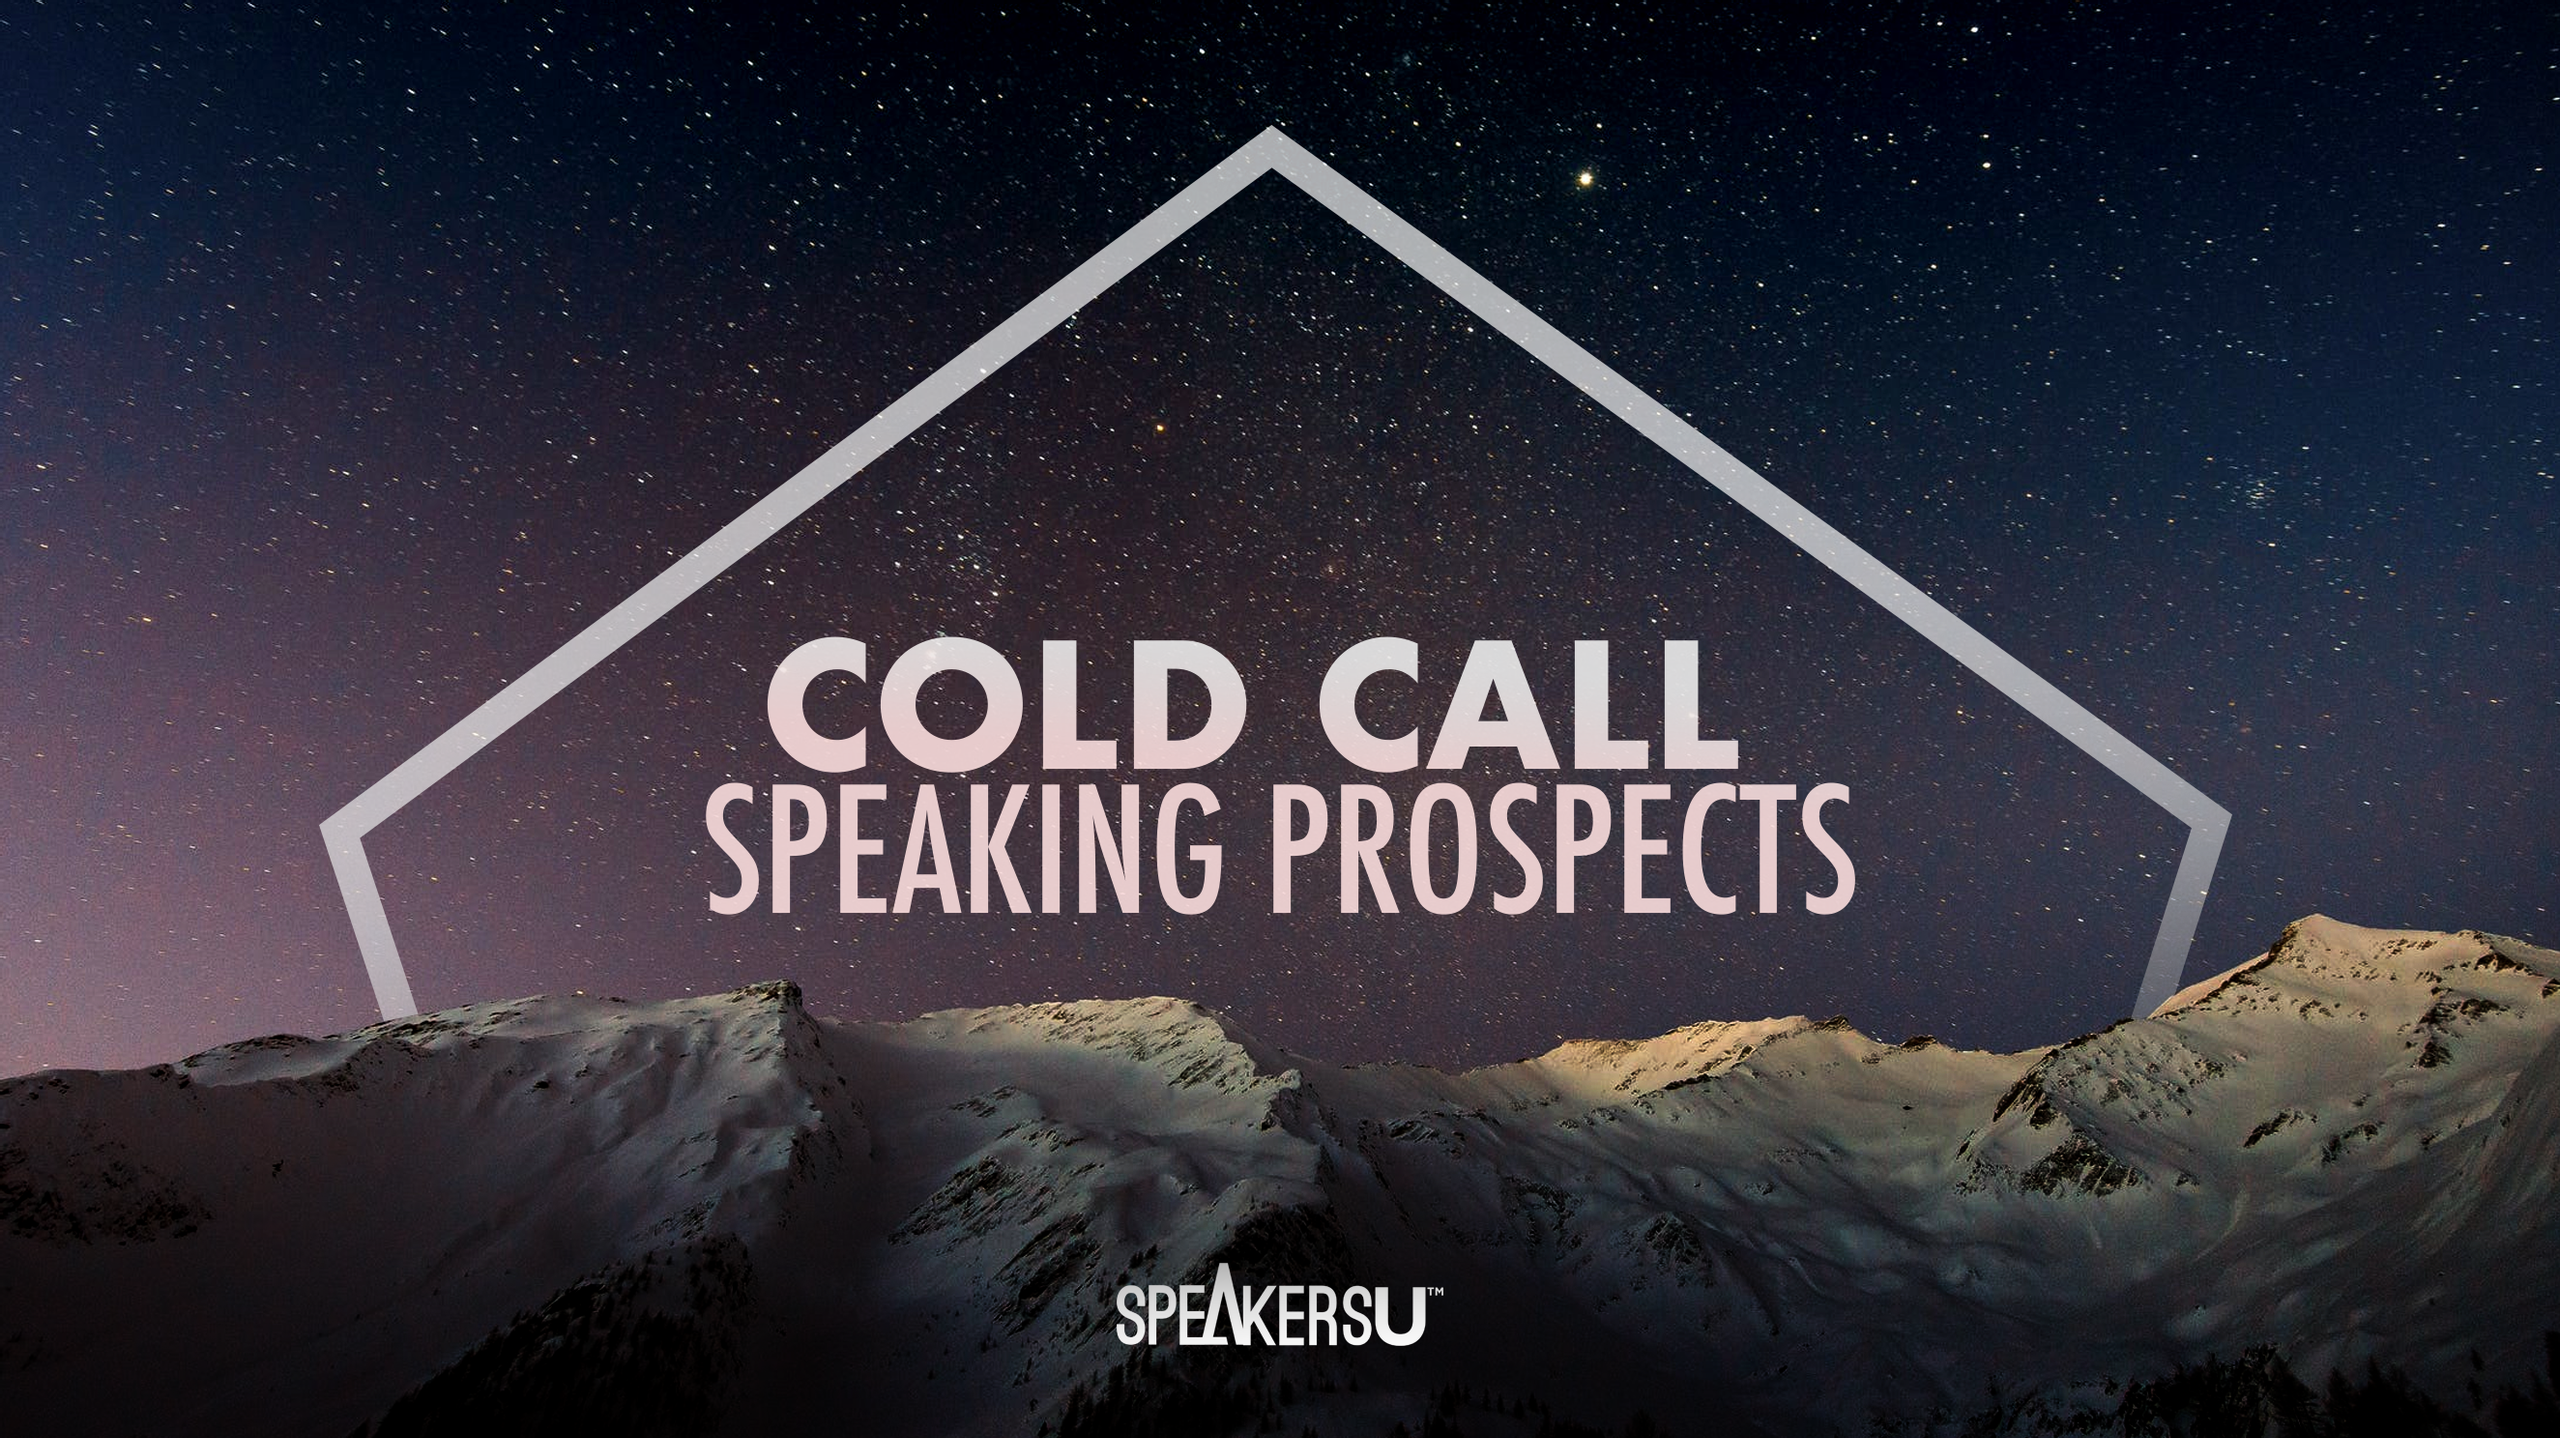 How To Cold Call Speaking Prospects